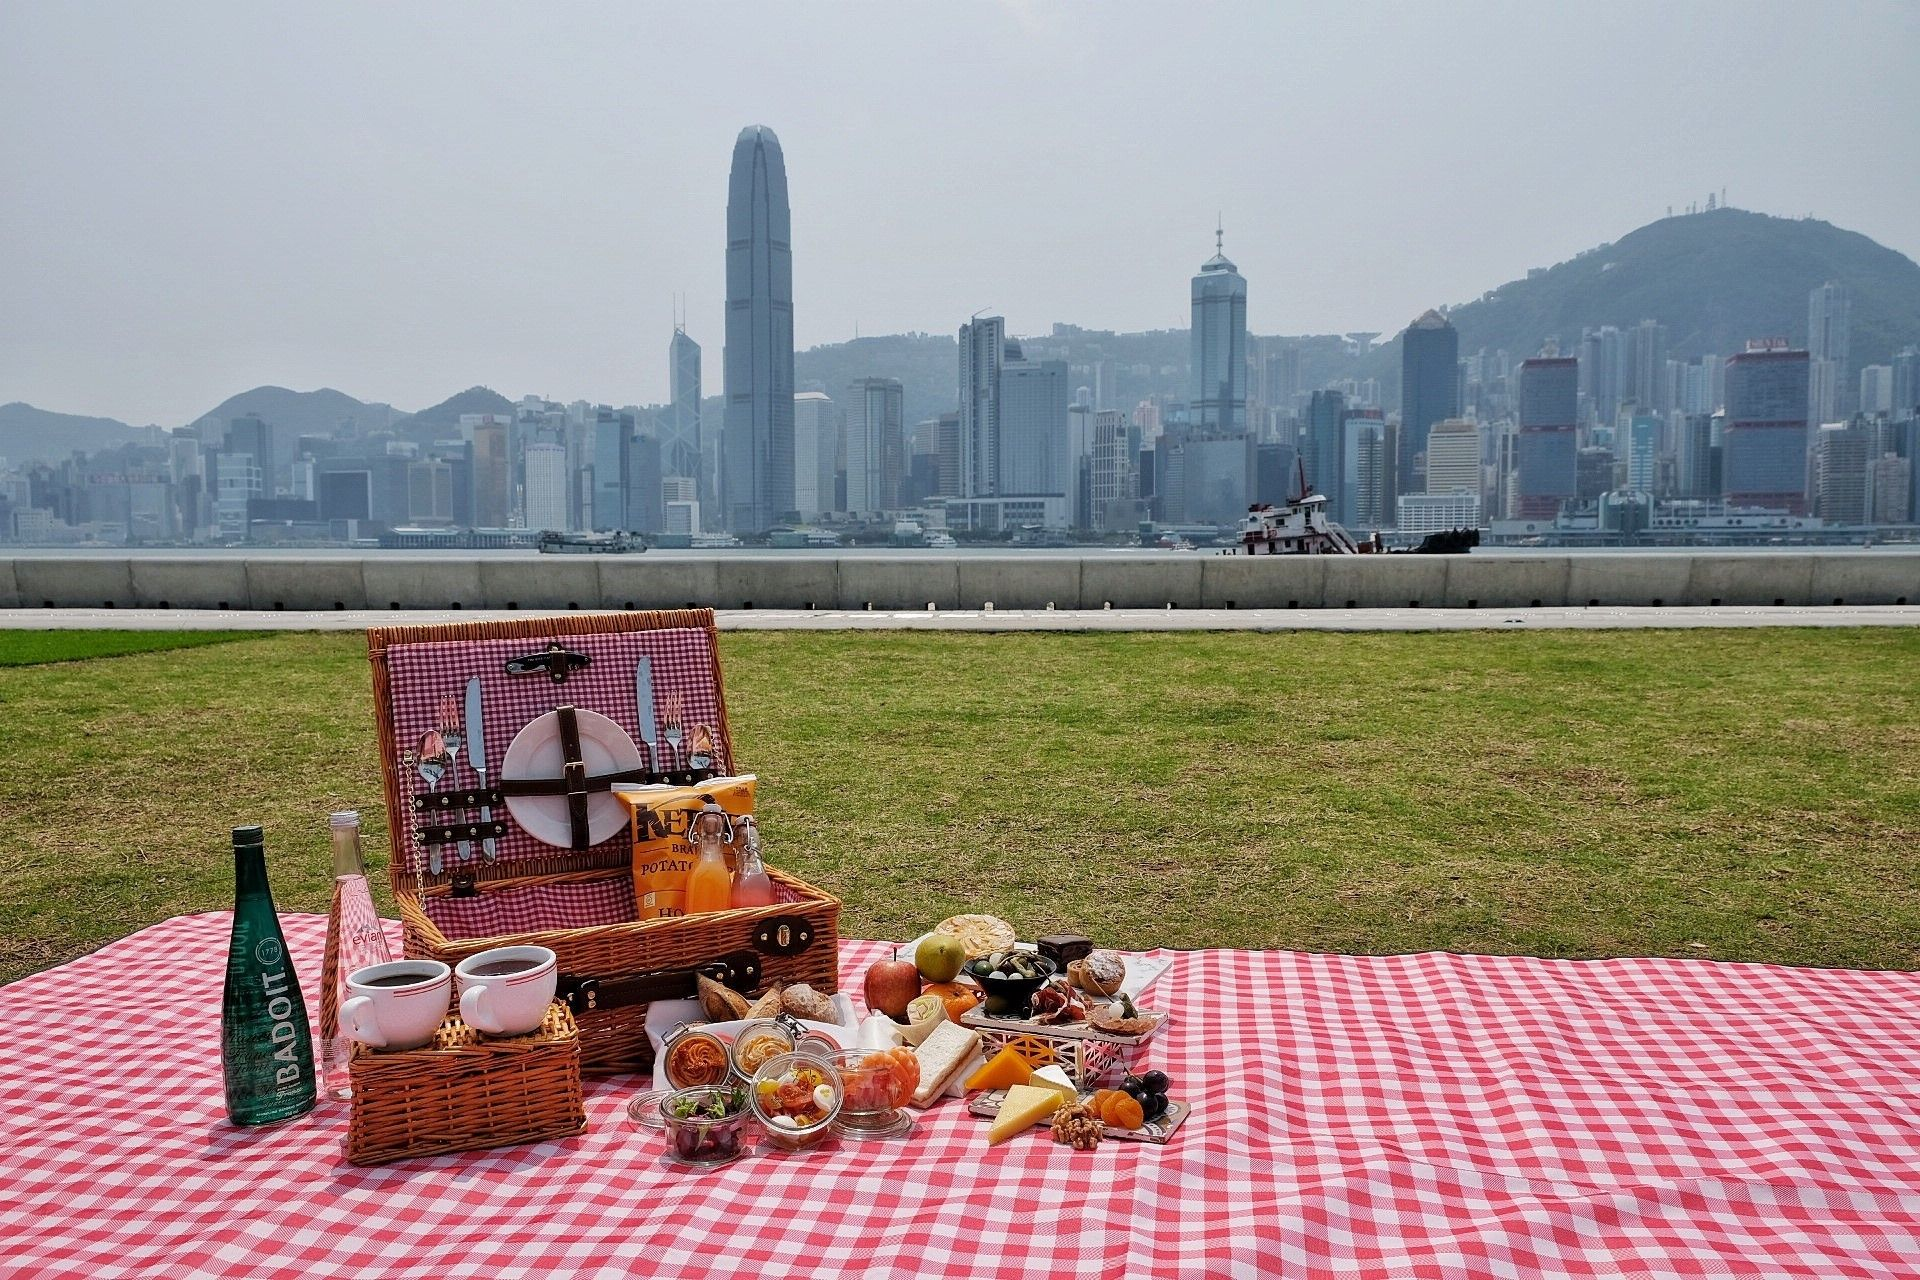 Luxury Picnic Baskets And More: Everything You Need To Picnic In Hong Kong